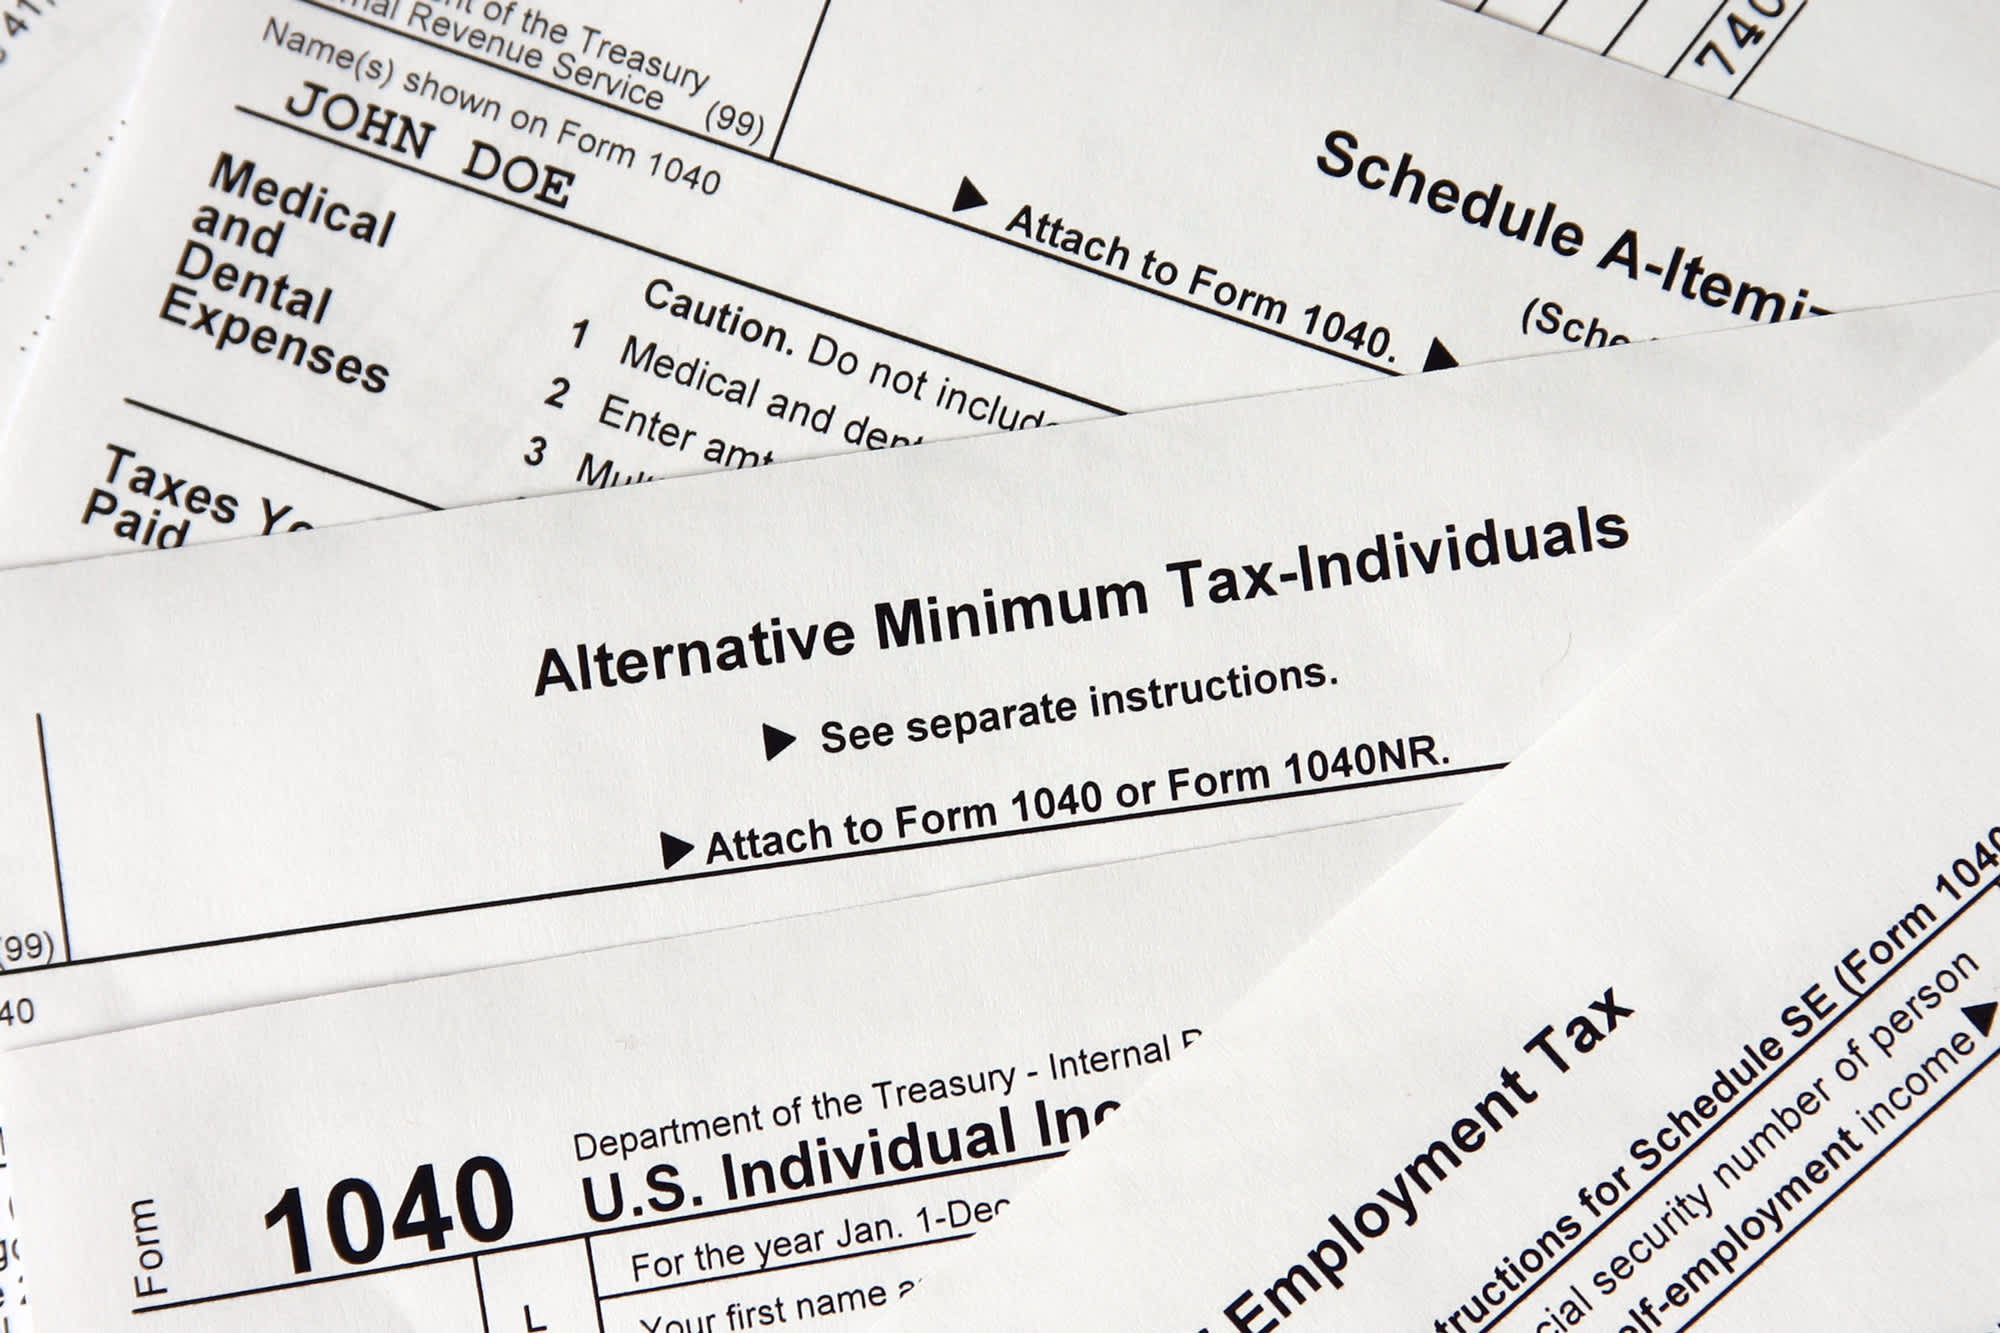 AMT can still hit some taxpayers despite reform